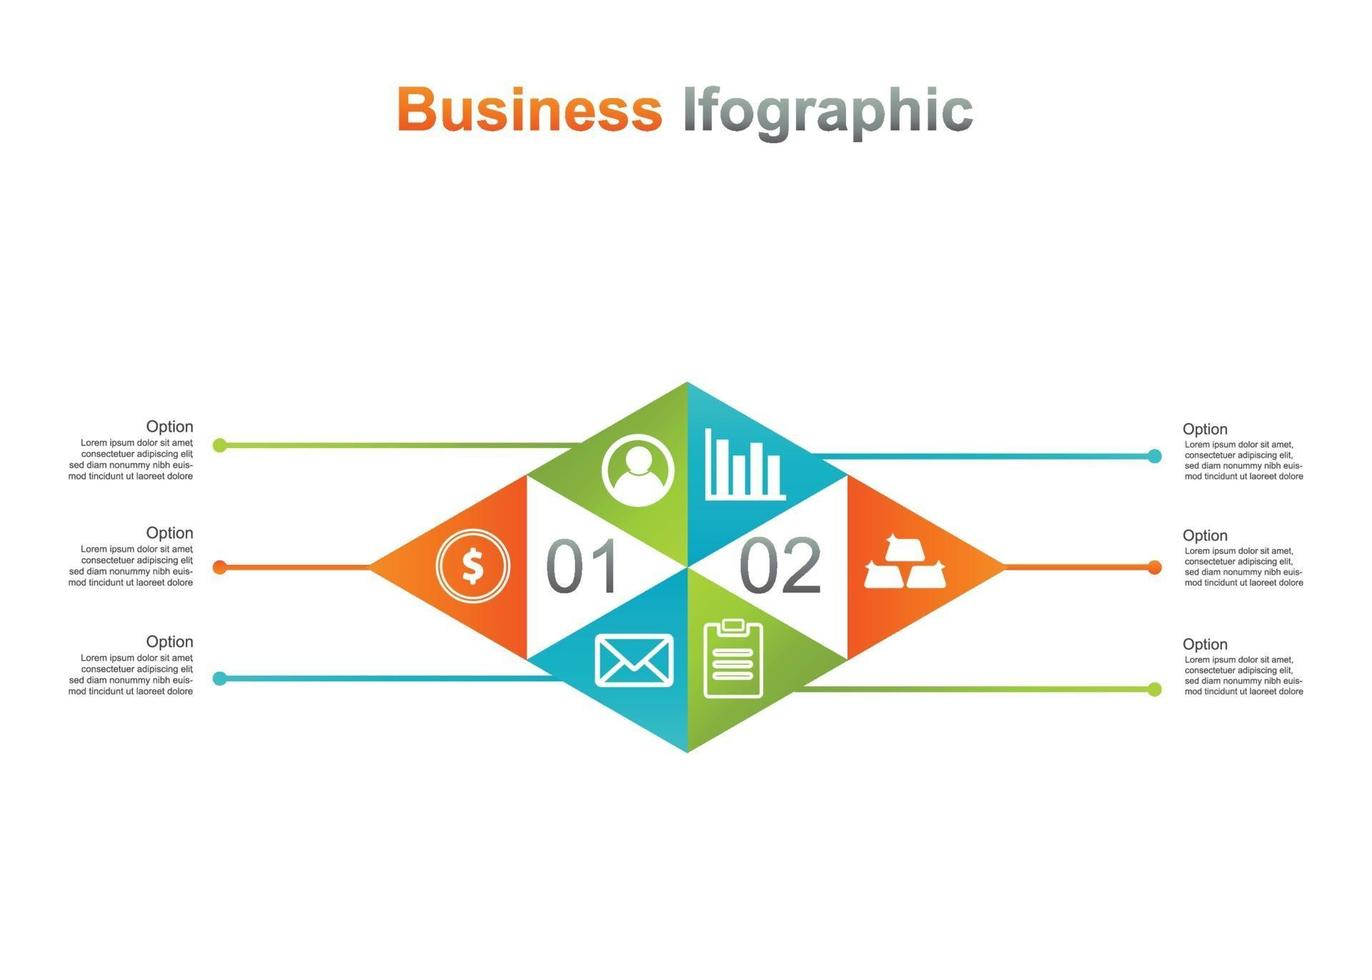 Business Infograpic Design Vorlage. 6 Option Infografik Vektor-Illustration. Perfekt für Marketing, Werbung und Präsentationsdesign vektor